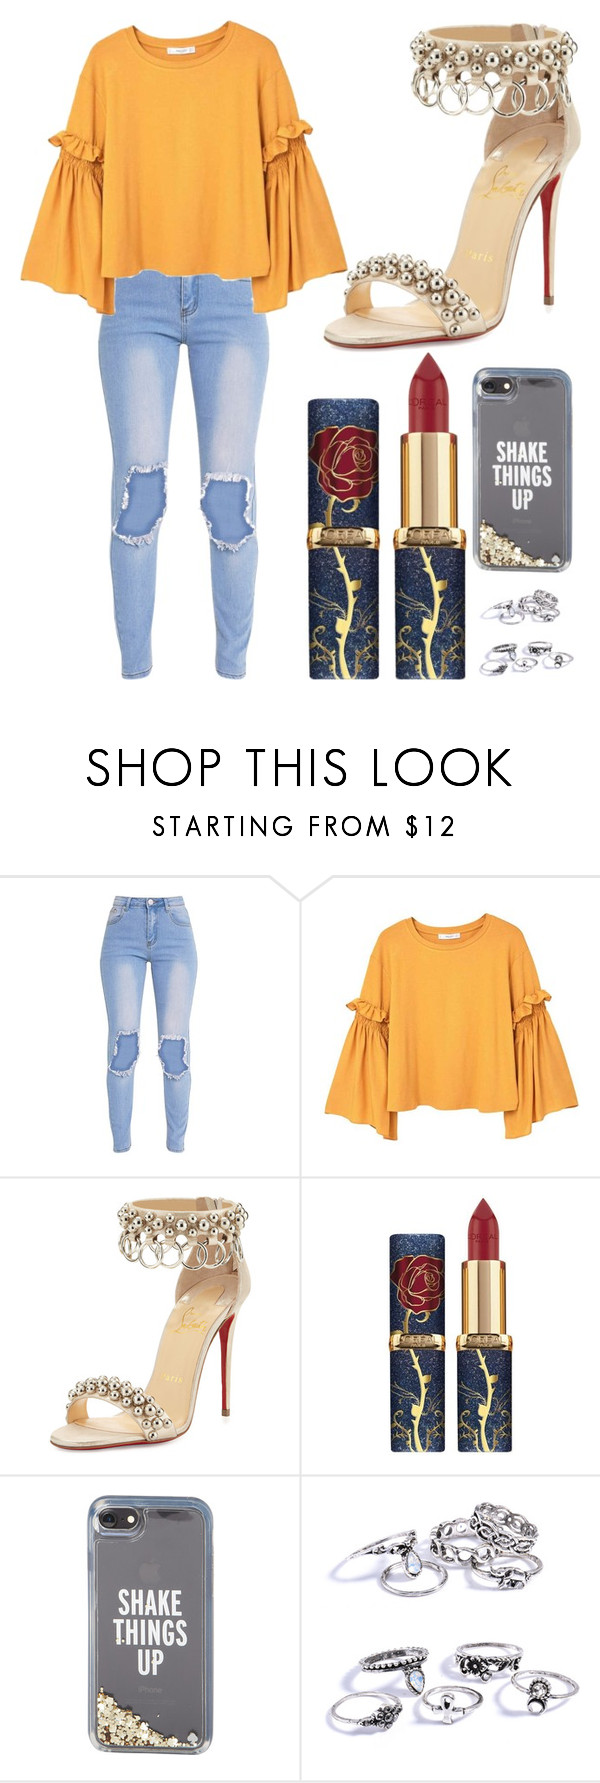 """Untitled #225"" by khyara on Polyvore featuring MANGO, Christian Louboutin and Kate Spade"